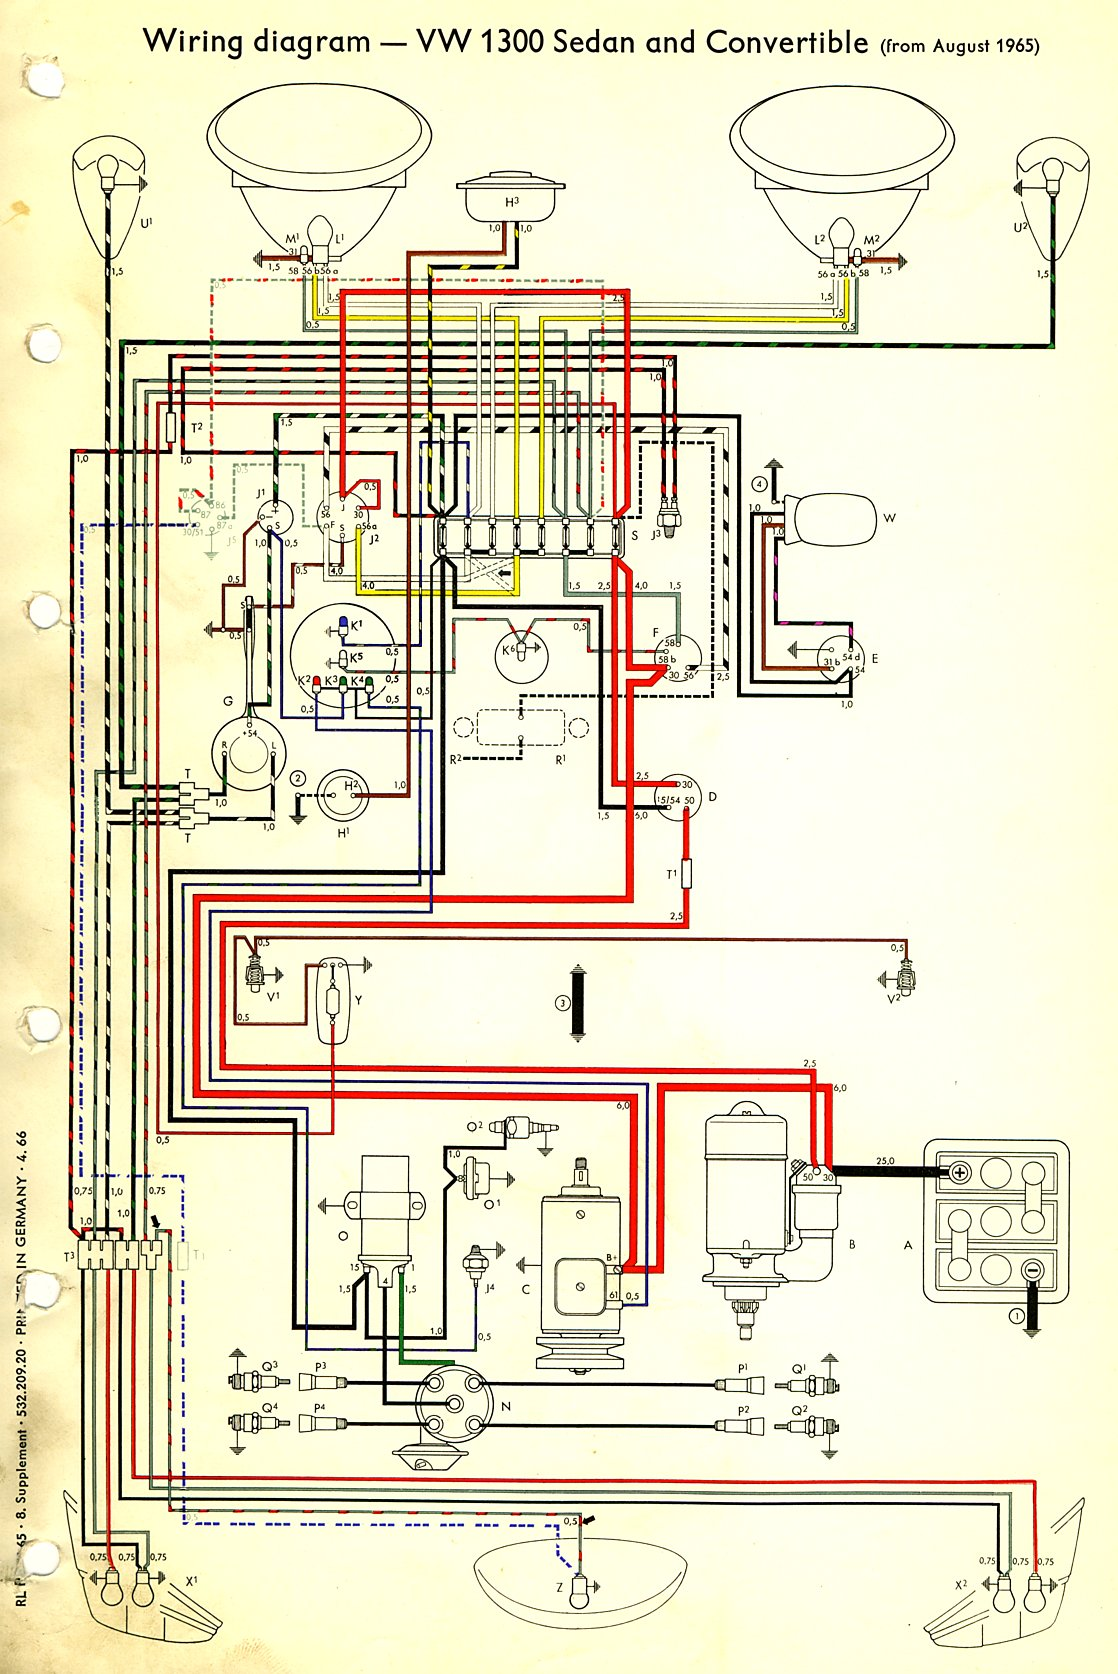 bug_66 1966 beetle wiring diagram thegoldenbug com vw wiring diagrams at pacquiaovsvargaslive.co